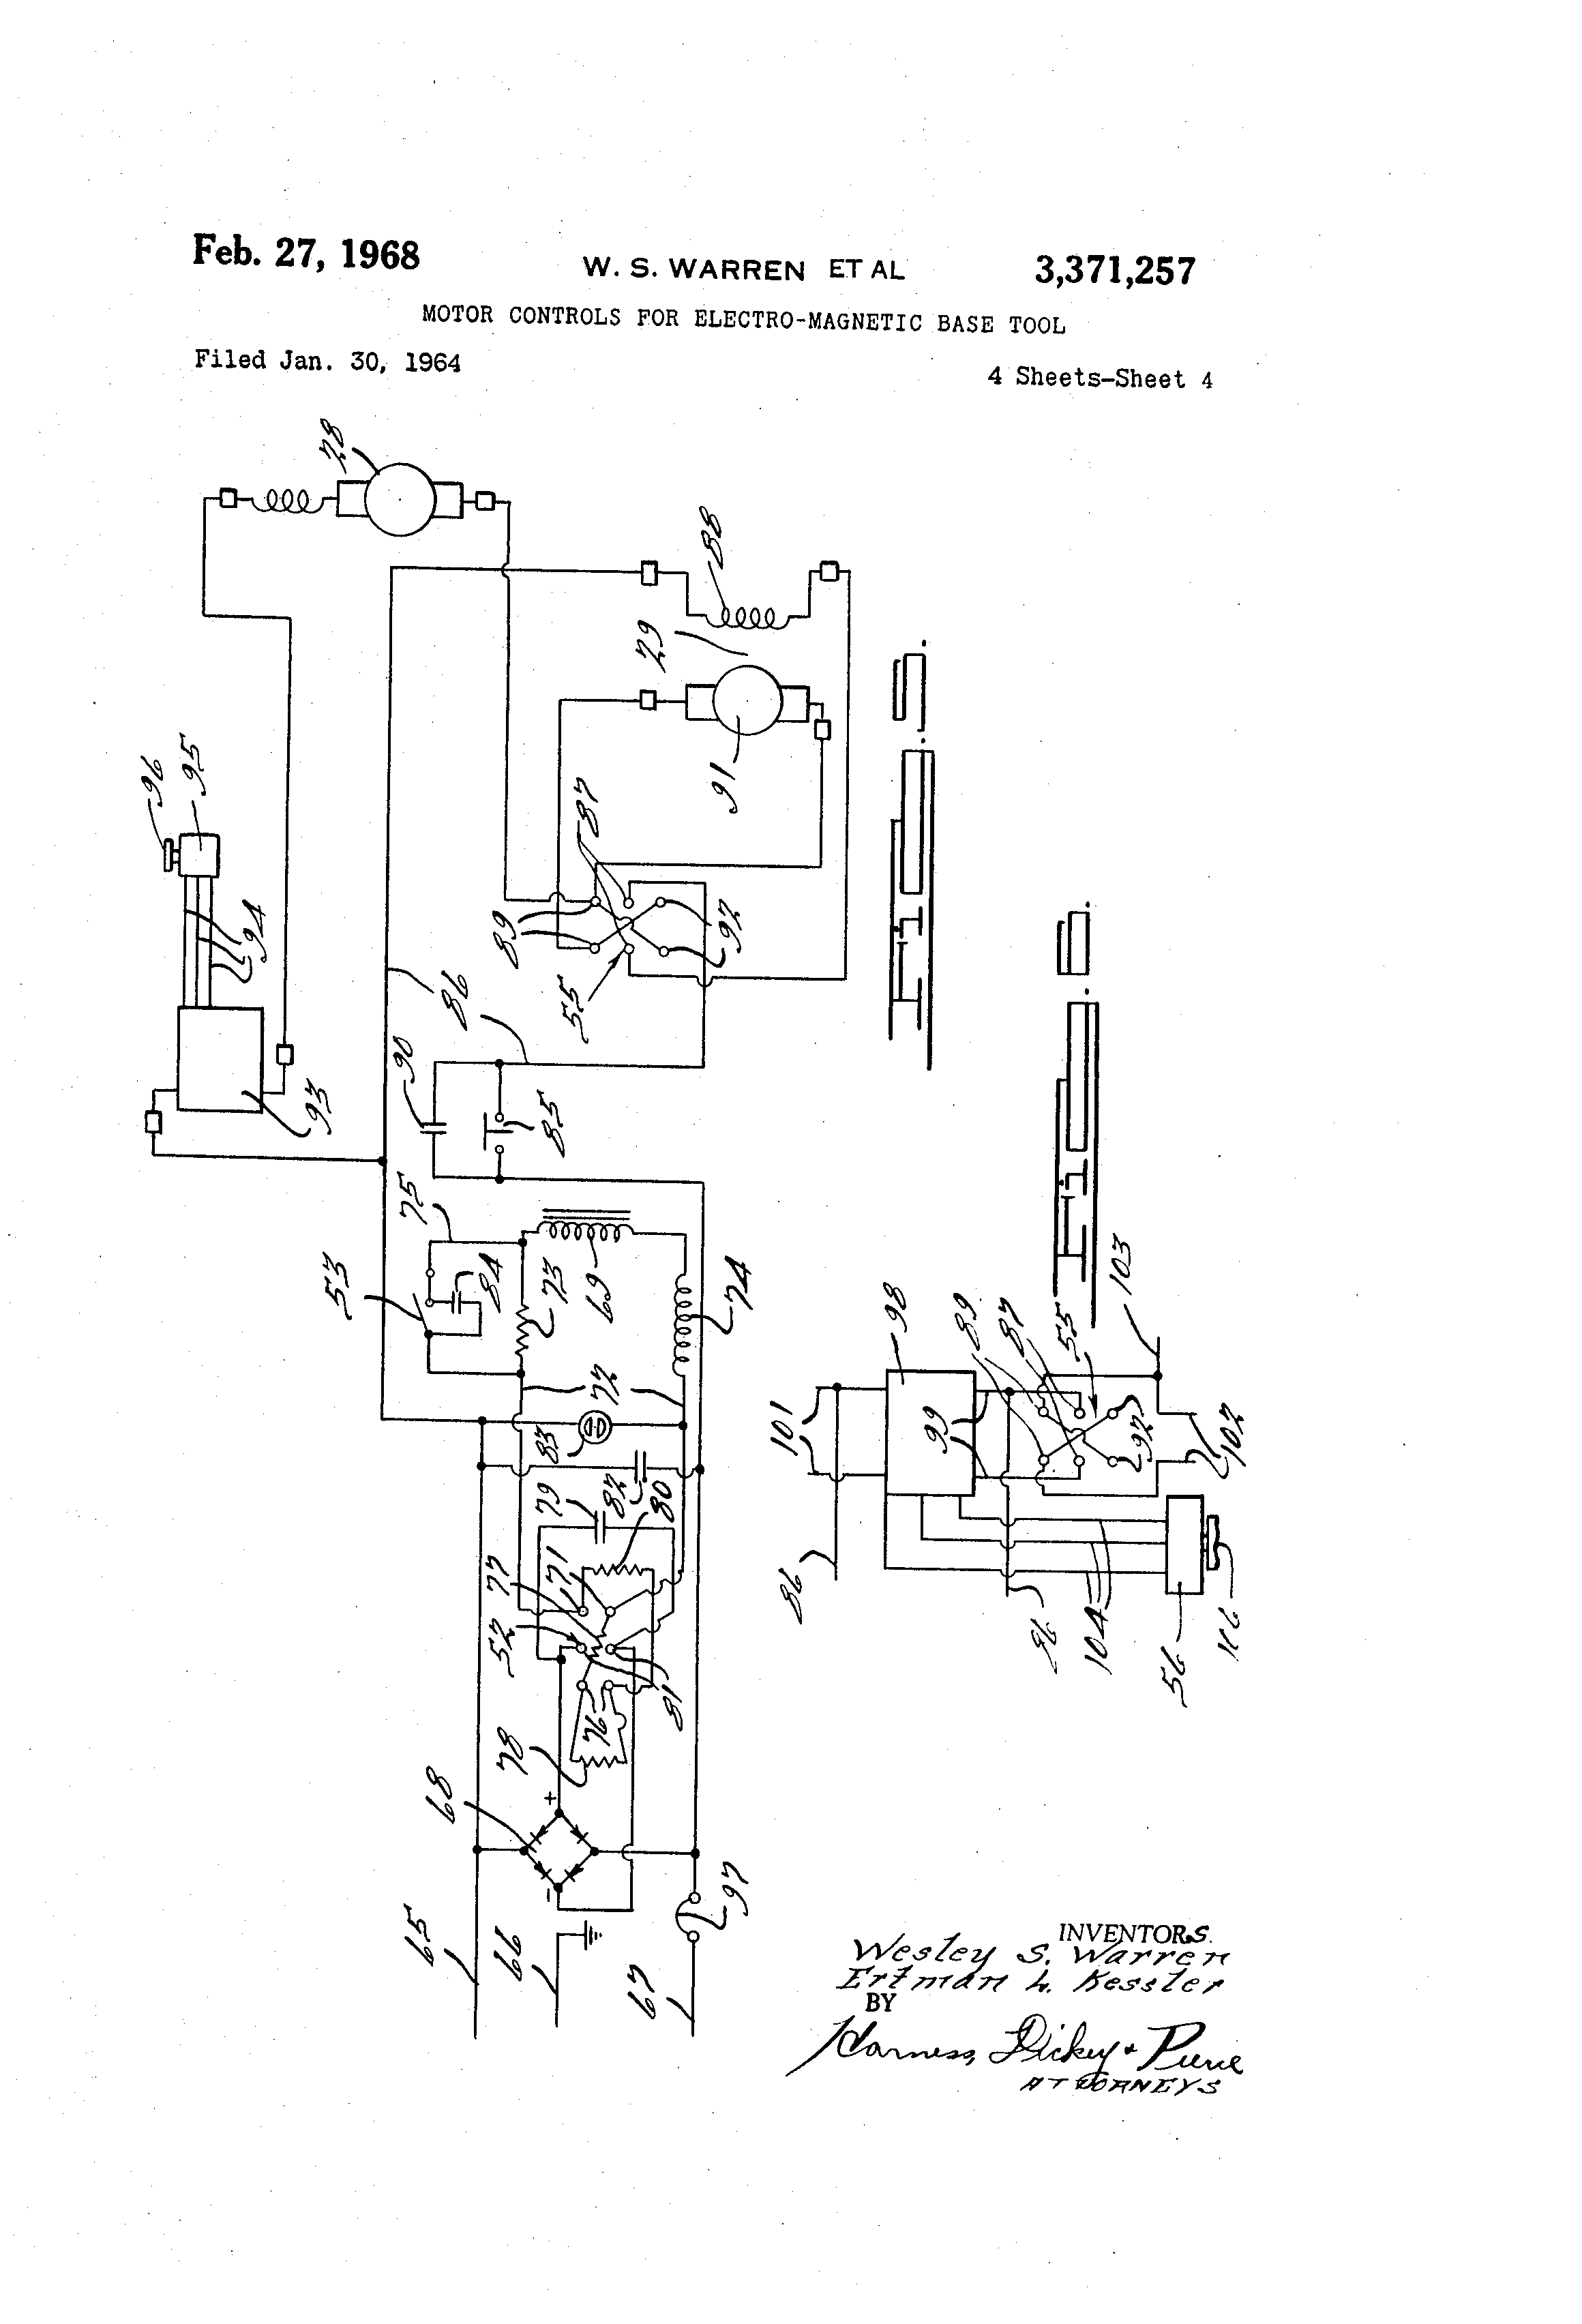 patent us3371257 - motor controls for electro-magnetic base tool